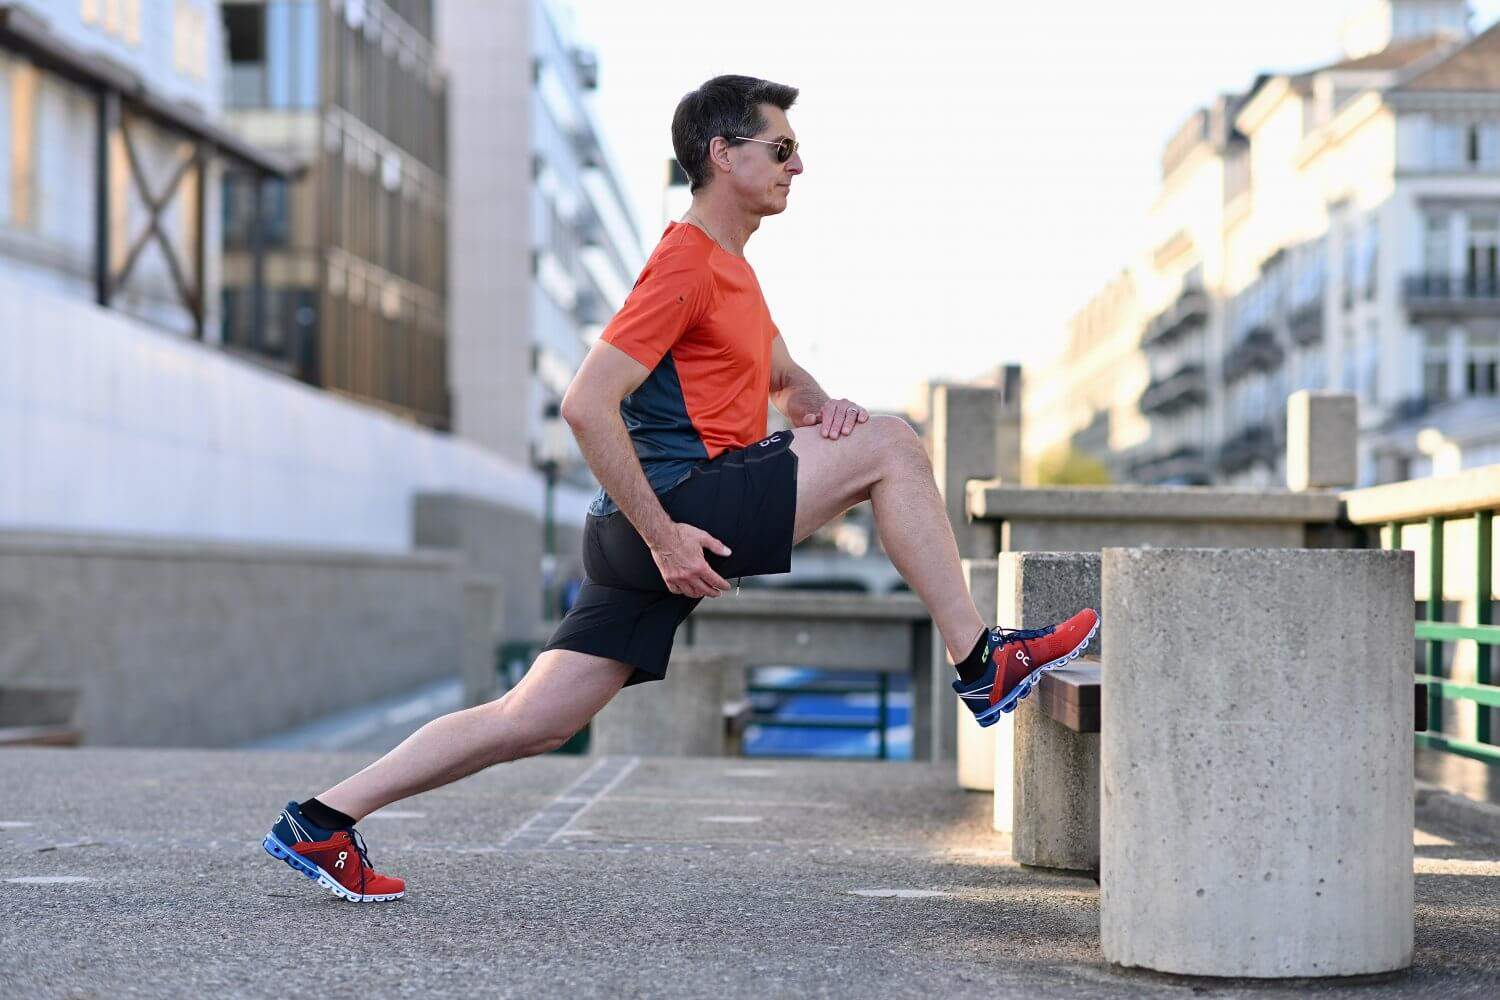 The Shoe that Broke the Iron Man Record plus 6 Ways Running Improves Your Health